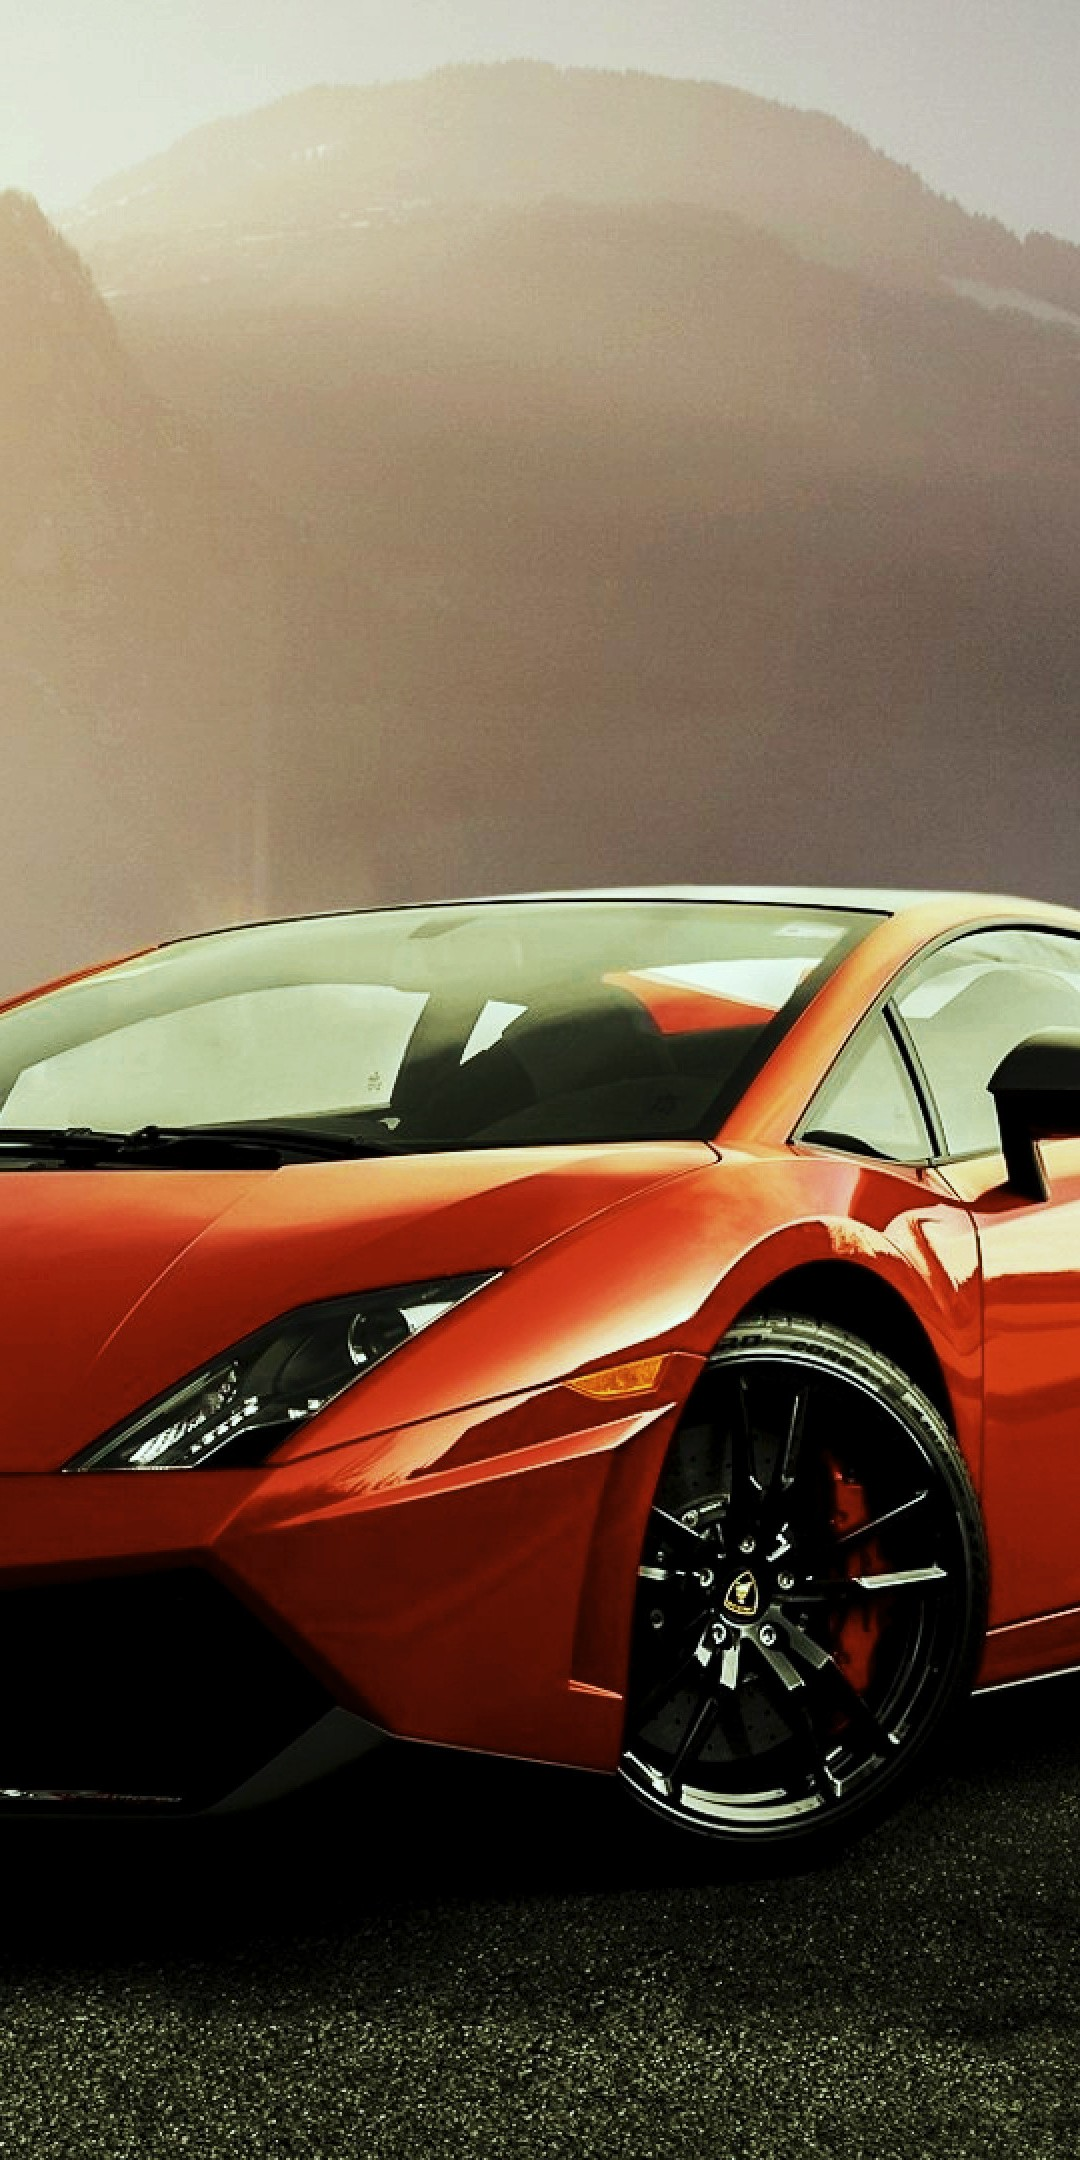 Lamborghini Gallardo Wallpaper 1080x2160 768x1536